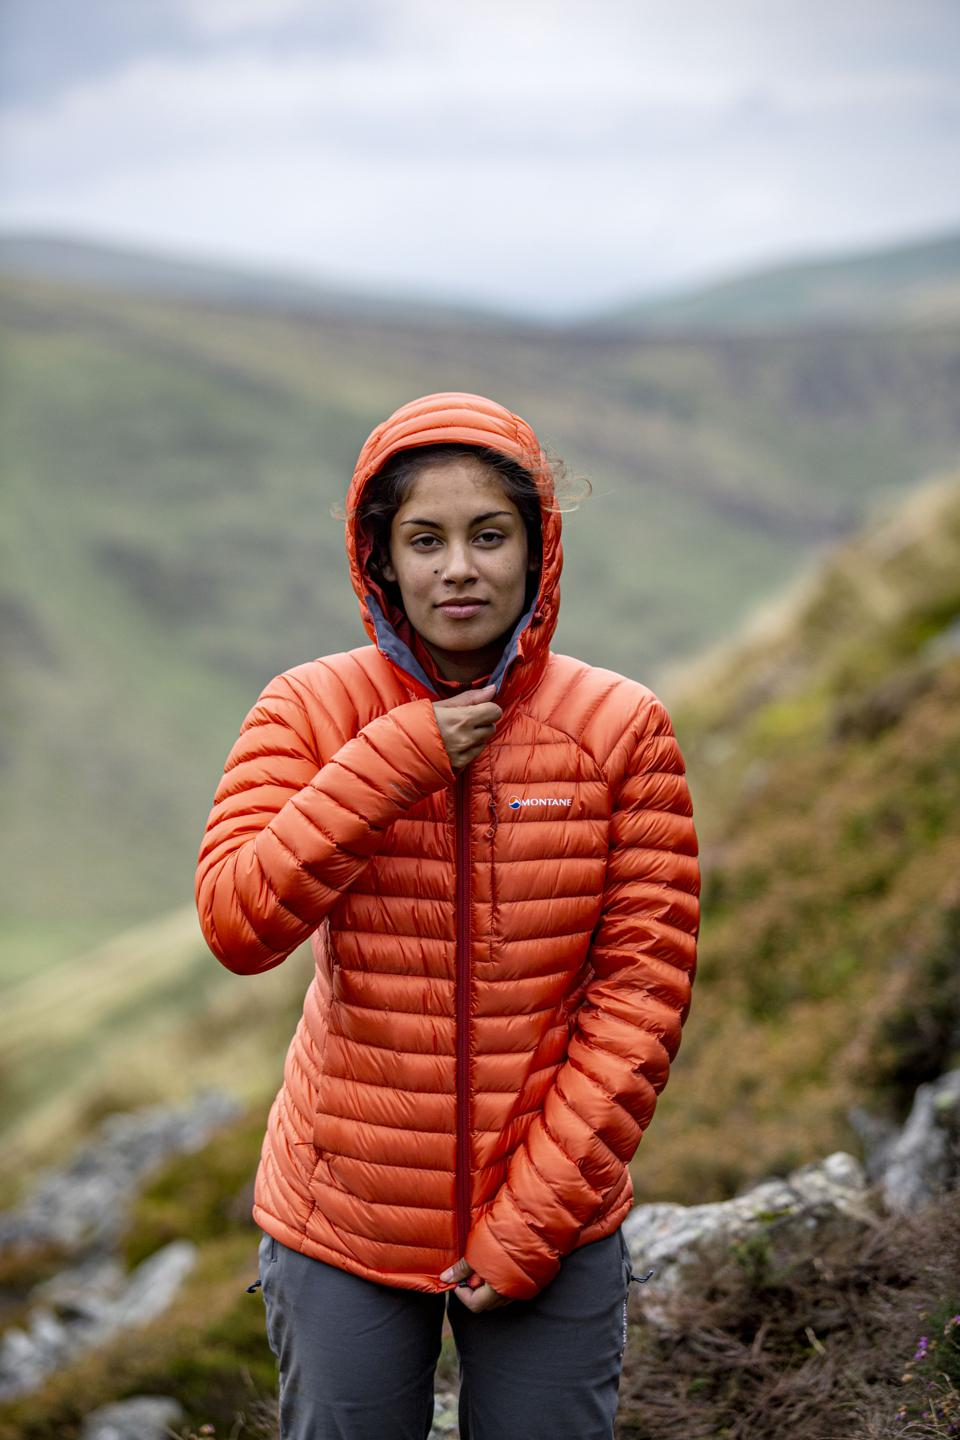 The Montane Featherlite Down Jacket in use in the hills.